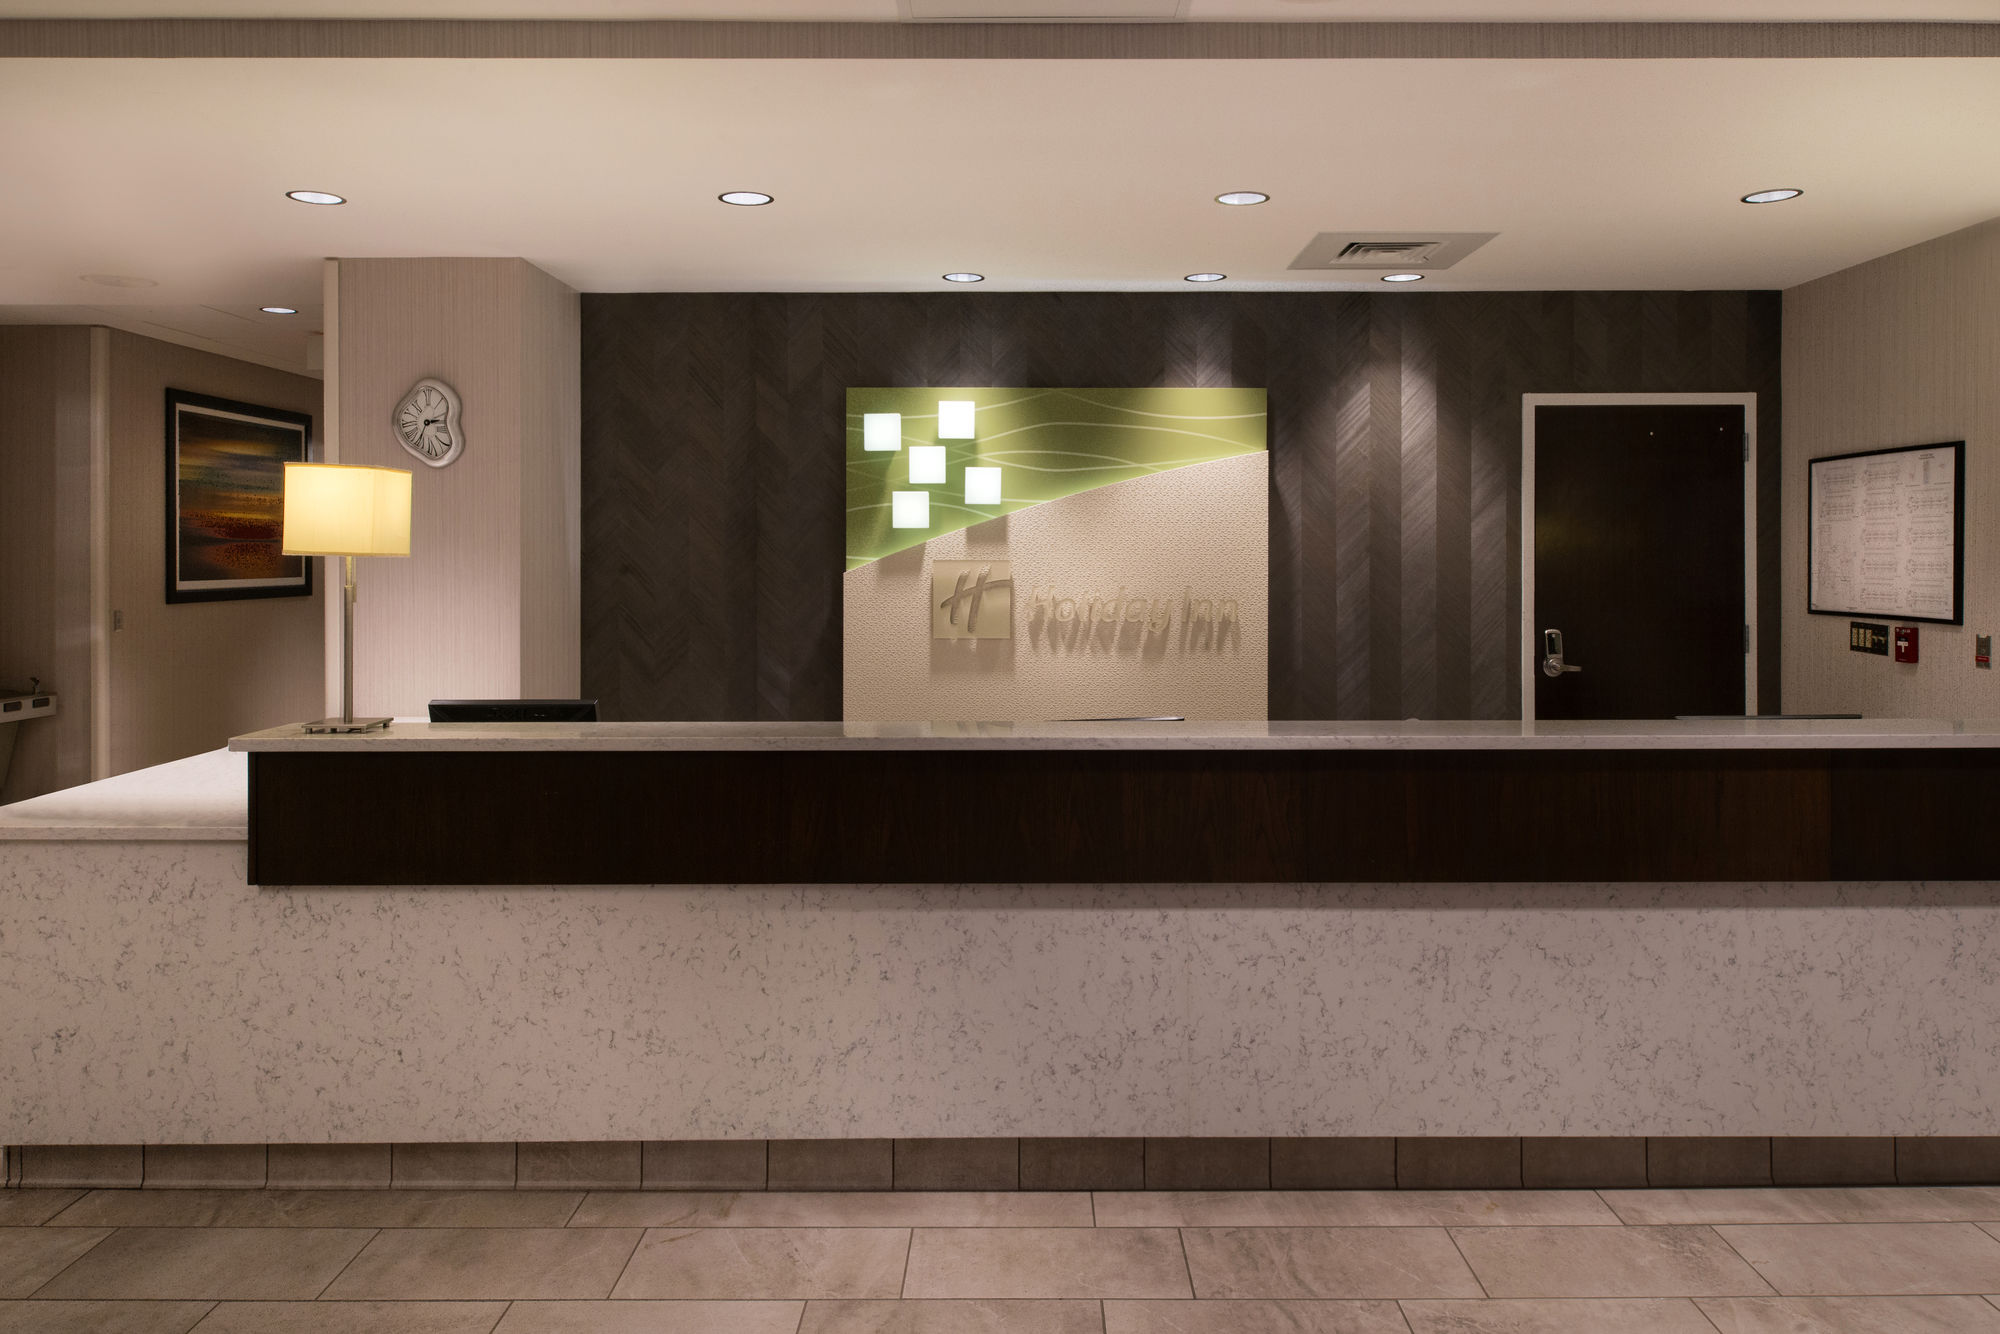 Holiday Inn Crabtree Valley in Raleigh, NC